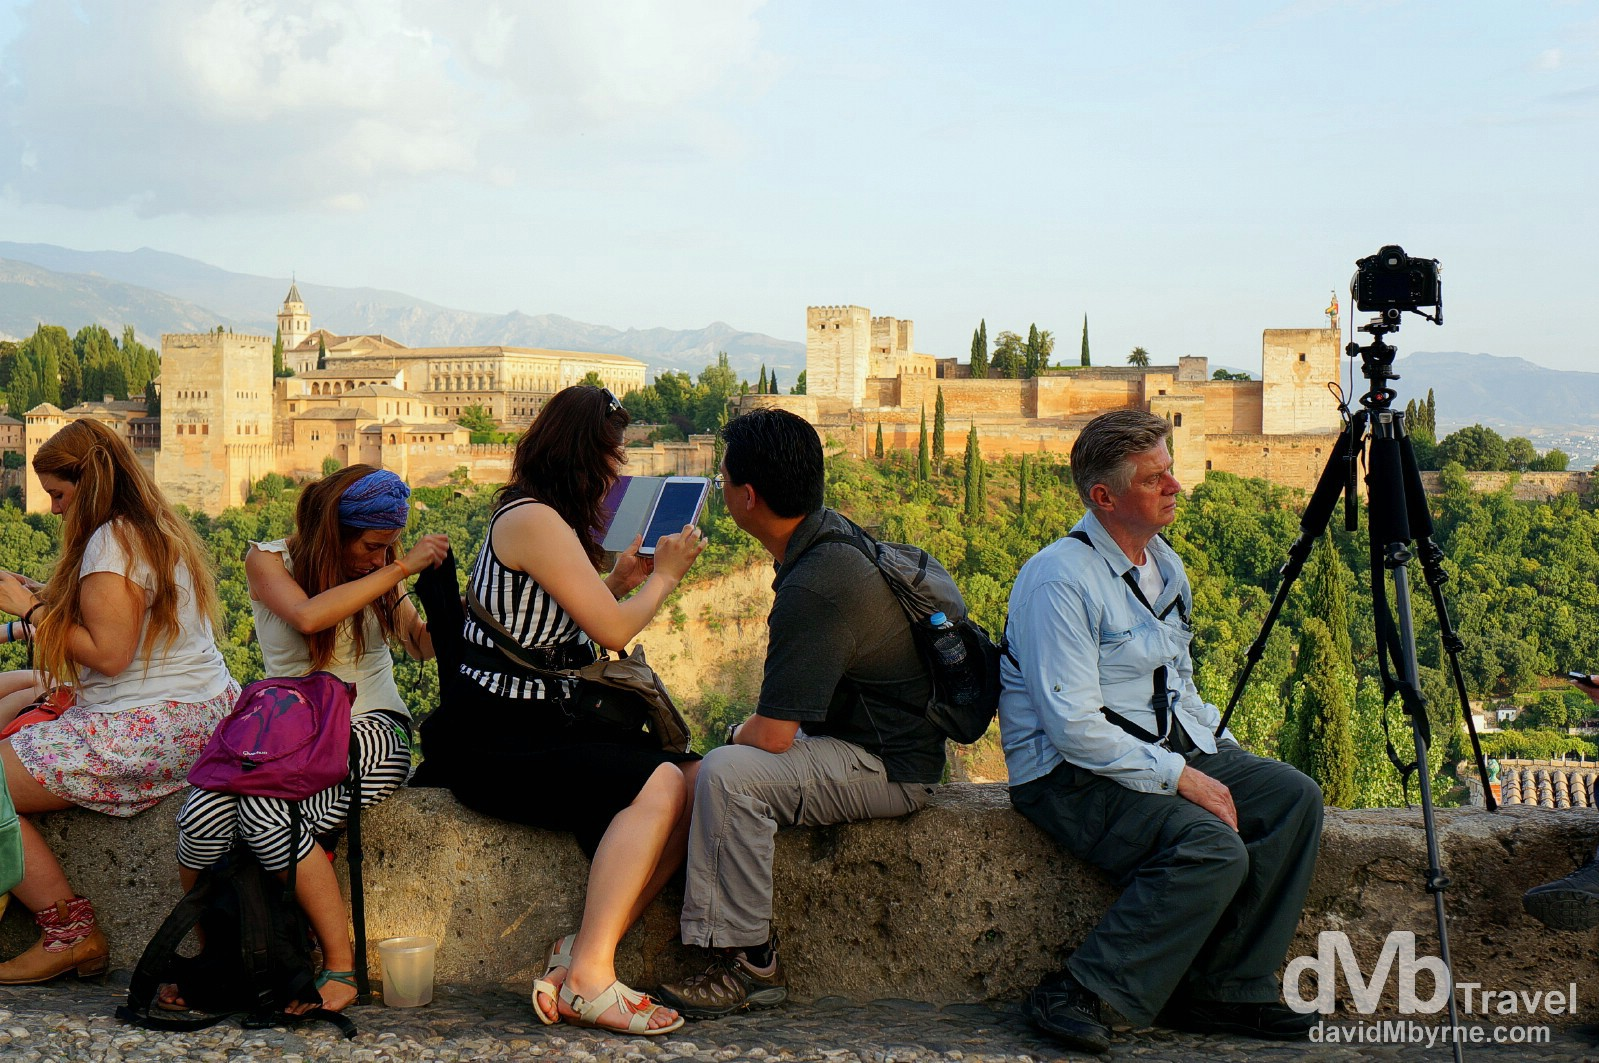 Viewing the Alhambra at sunset from the Mirador (Gazebo) San Nicolas in Granada, Andalusia, Spain. June 11th 2014.